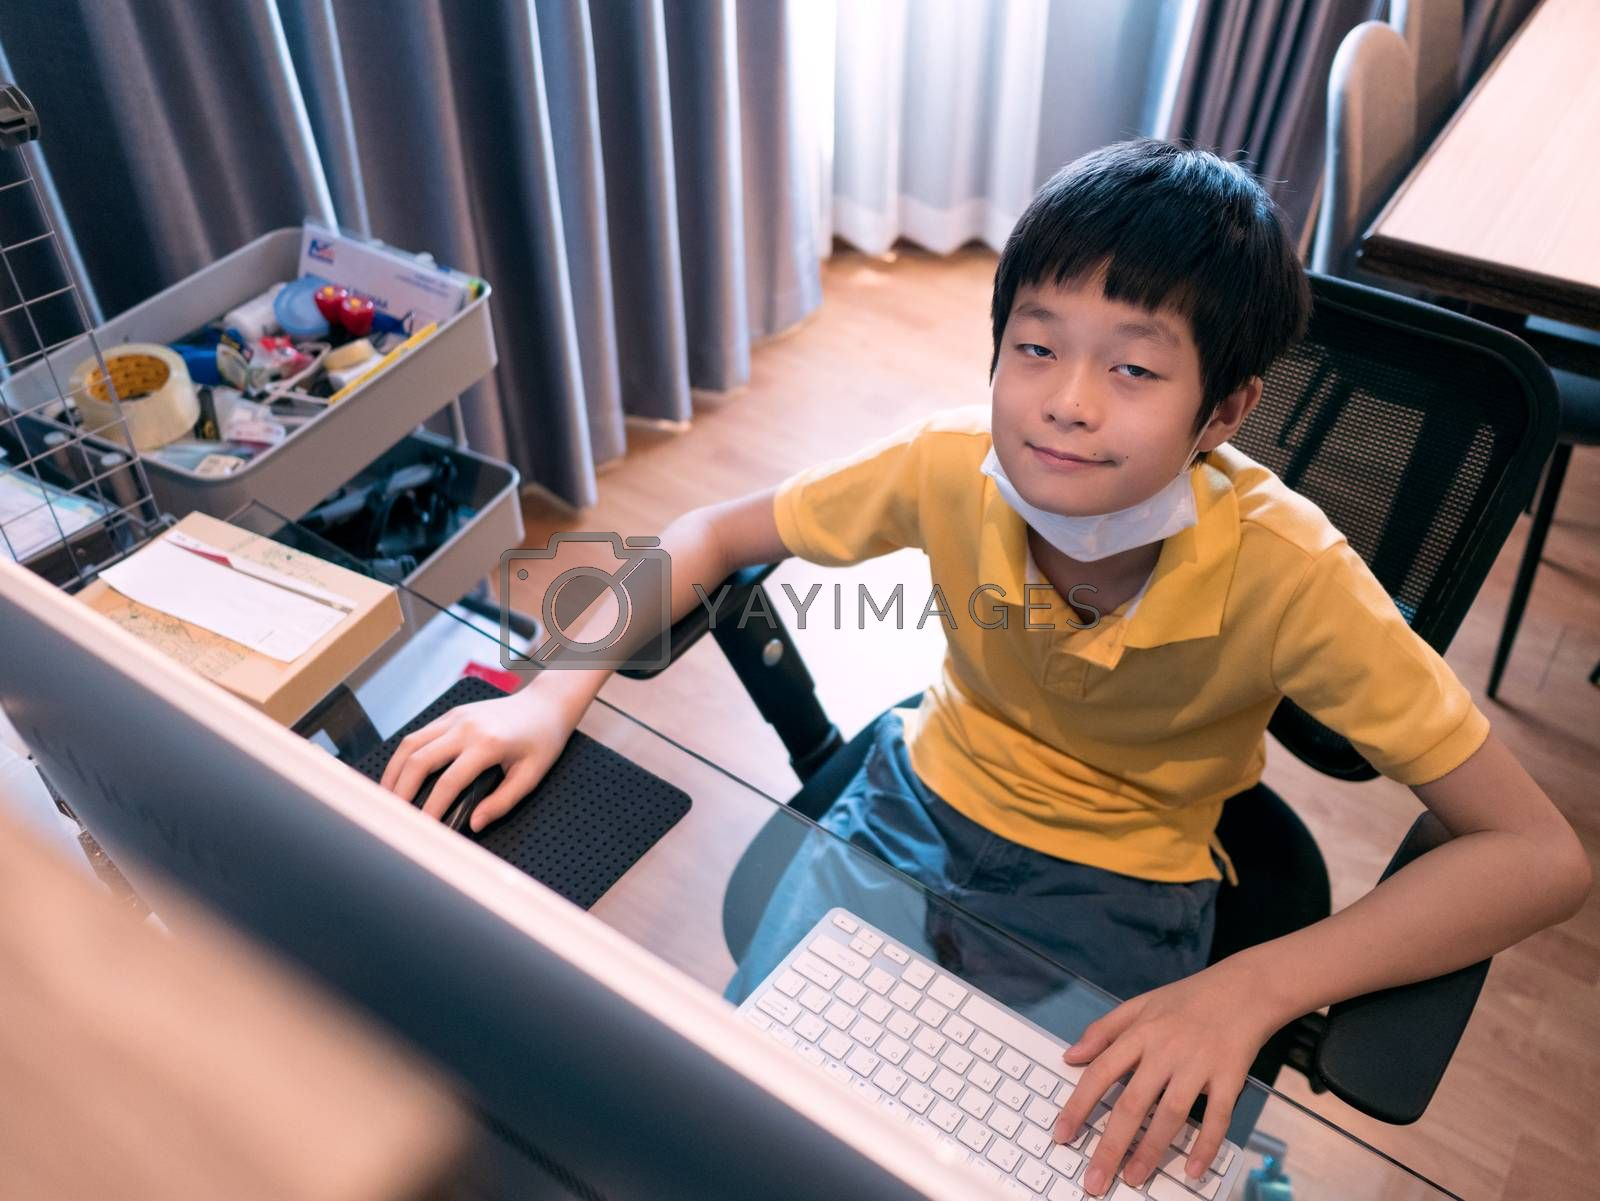 cute asian boy hanging face mask on neck, looking at camera, sitting at desk in living room, using pc for studying online with monitor on blurred foreground, high angle view . Study online, stay home concept.